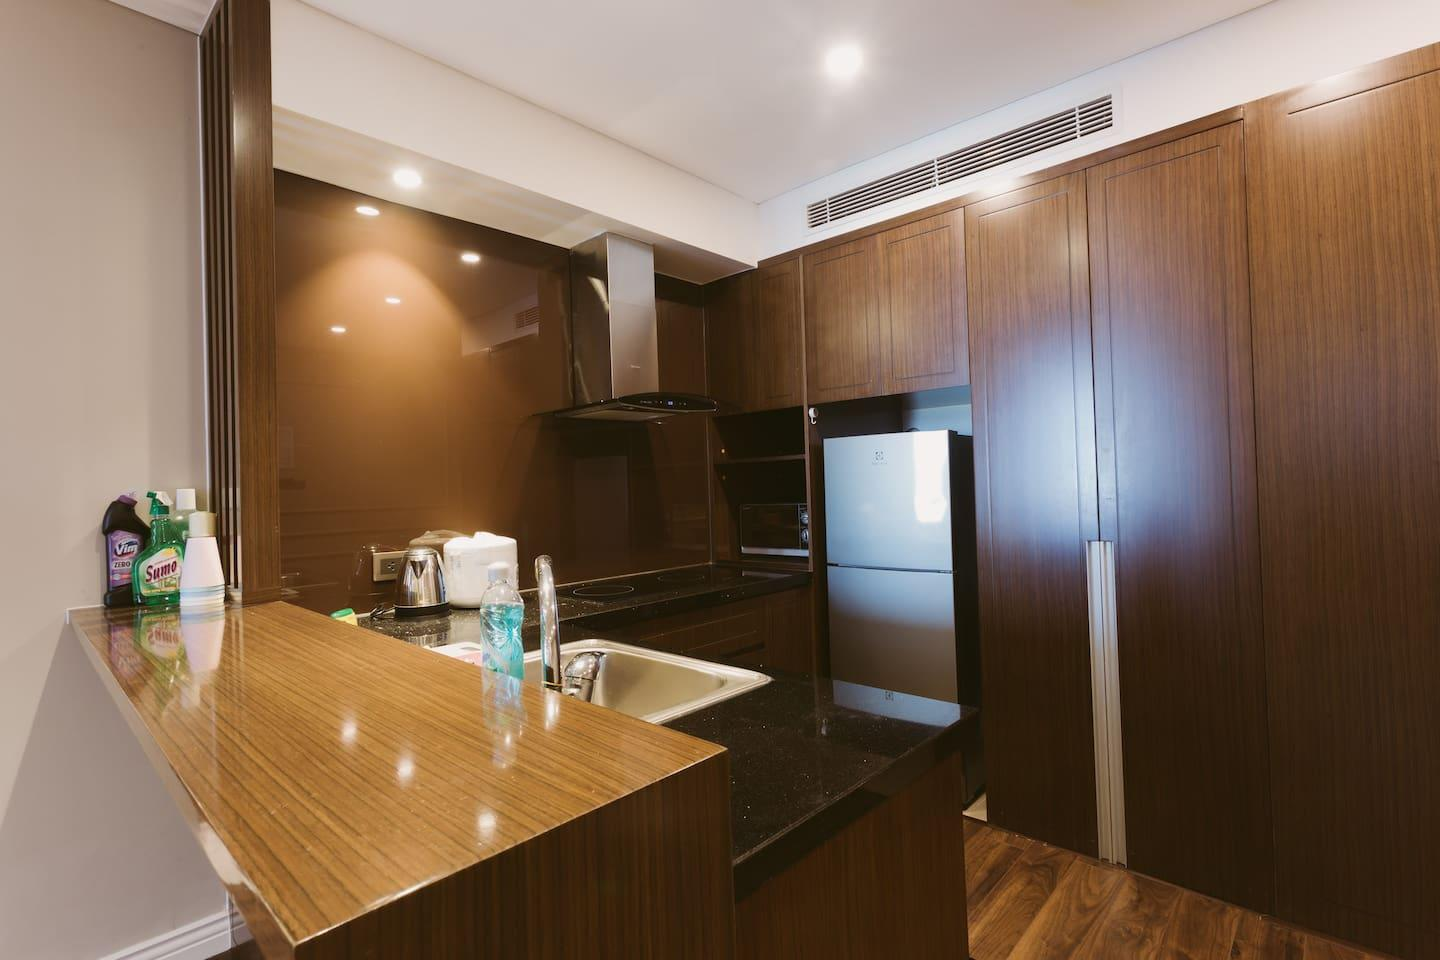 Apartment Altara Suites  2BEDROOM  3Beds   FREE PICK UP photo 18206860